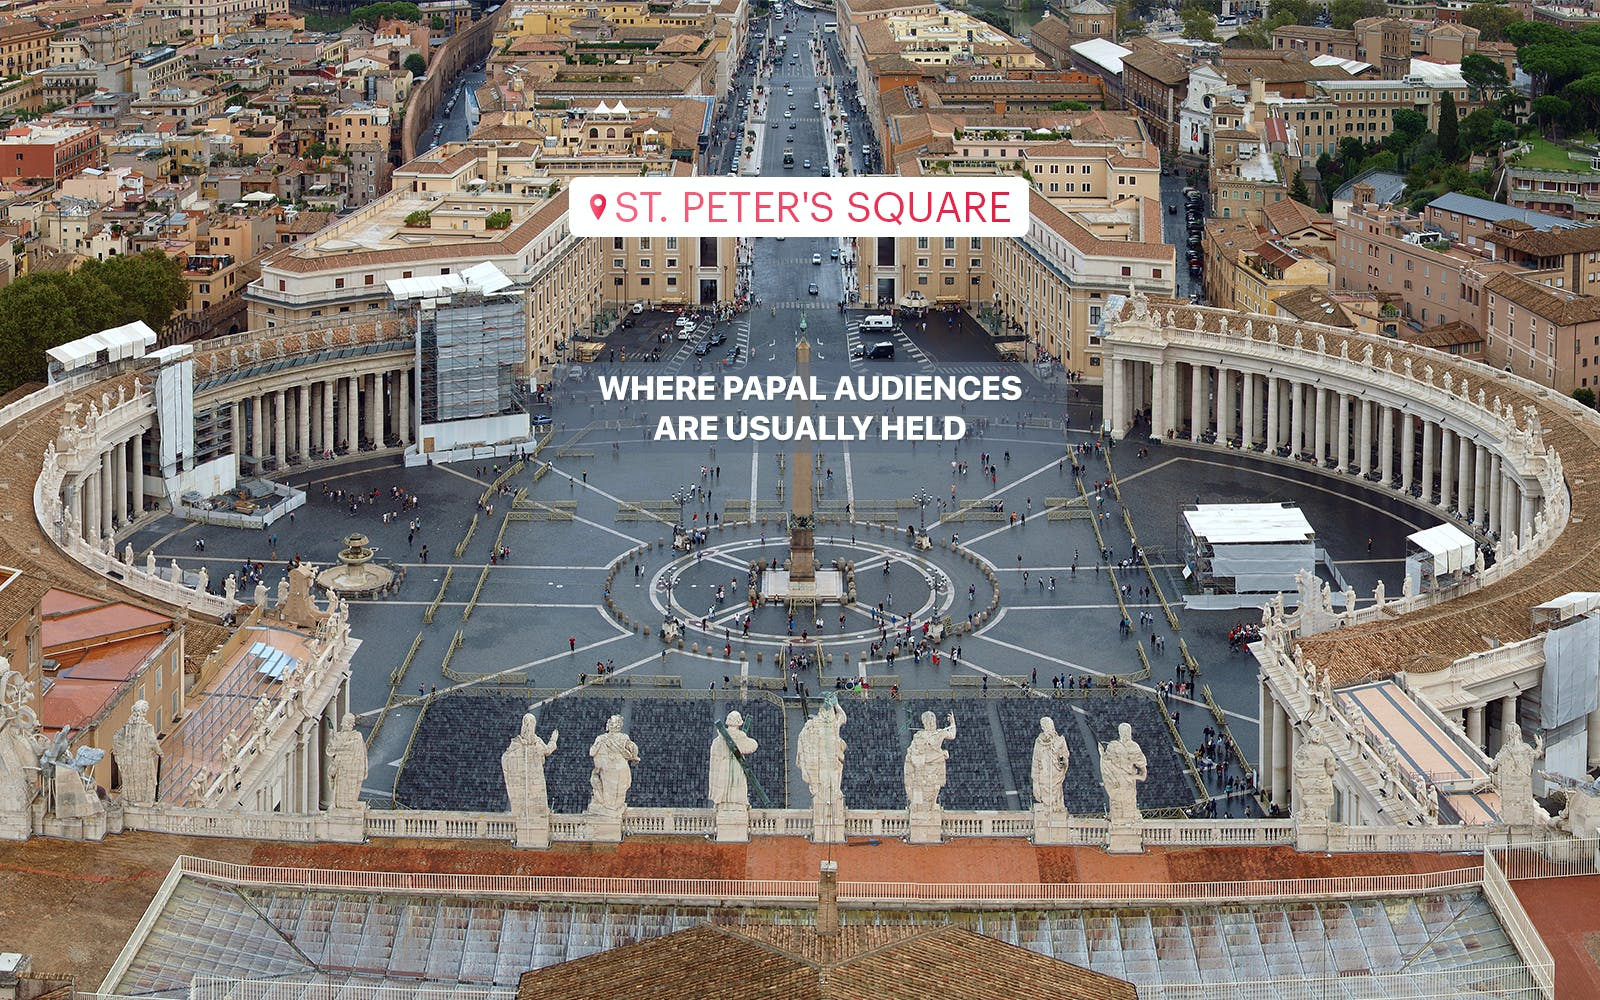 papal audience experience with pope francis (only wednesdays)-2